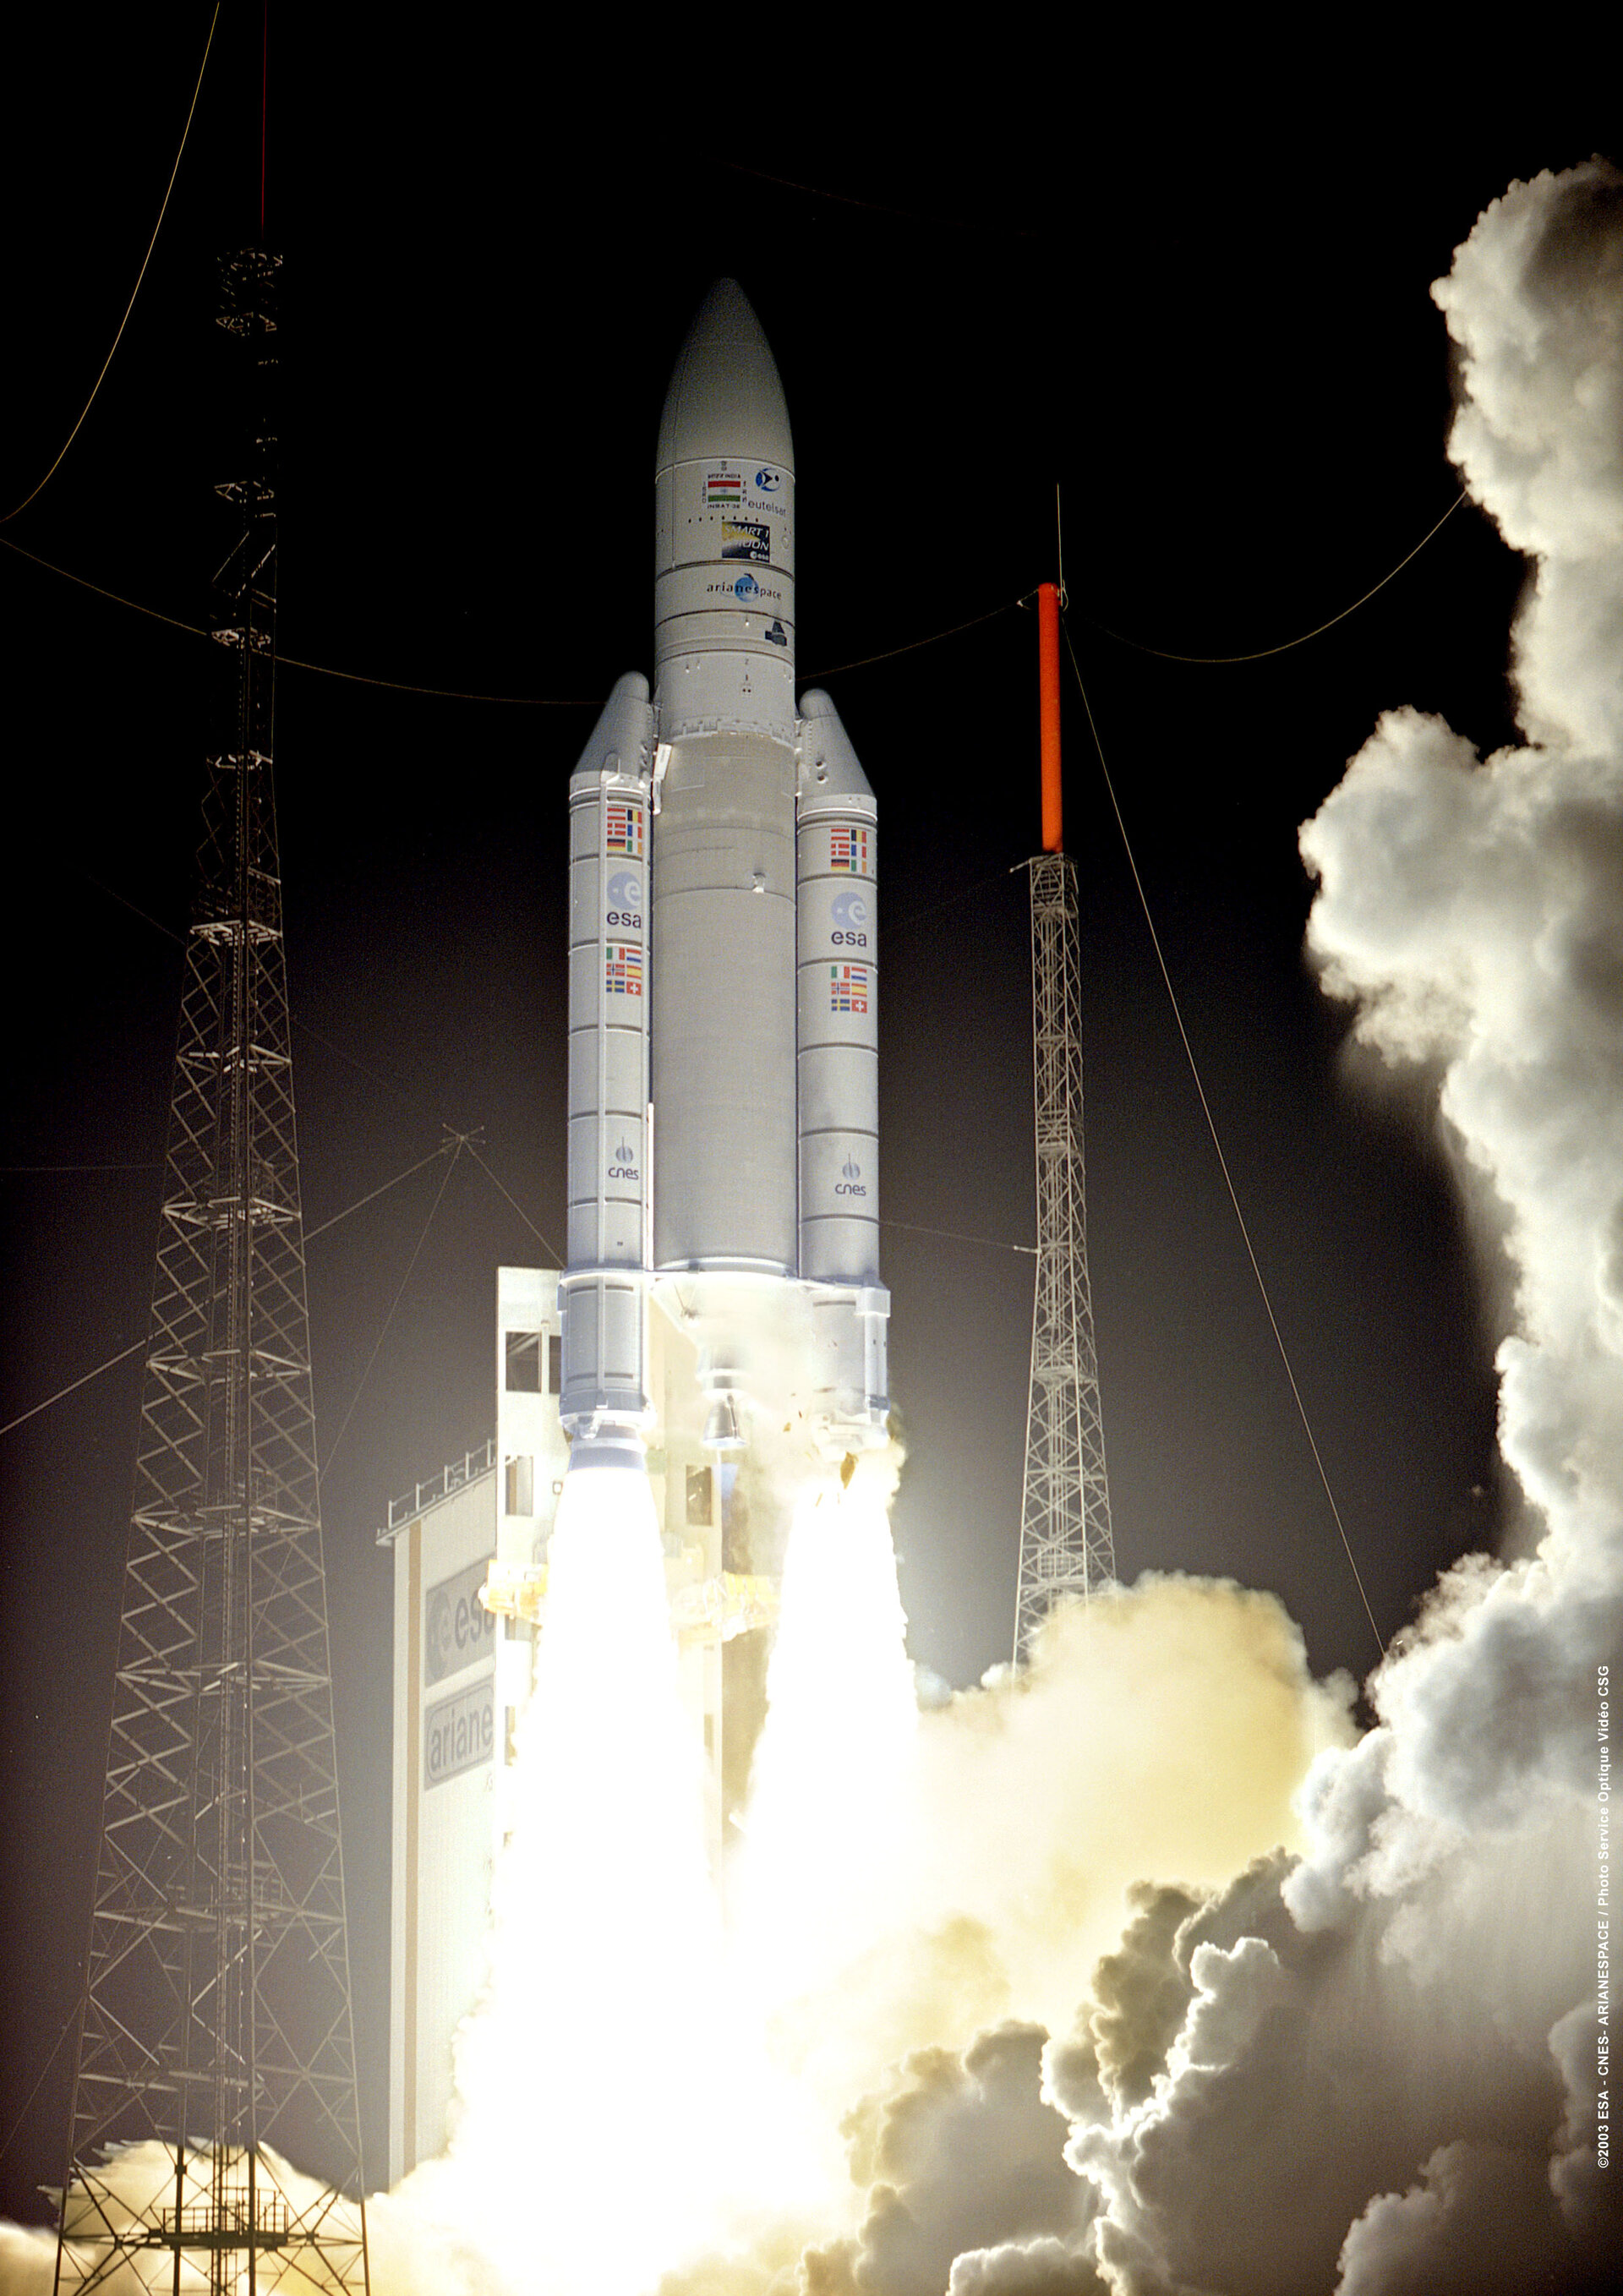 Ariane 5 G places 3 satellites in orbit, September 2003